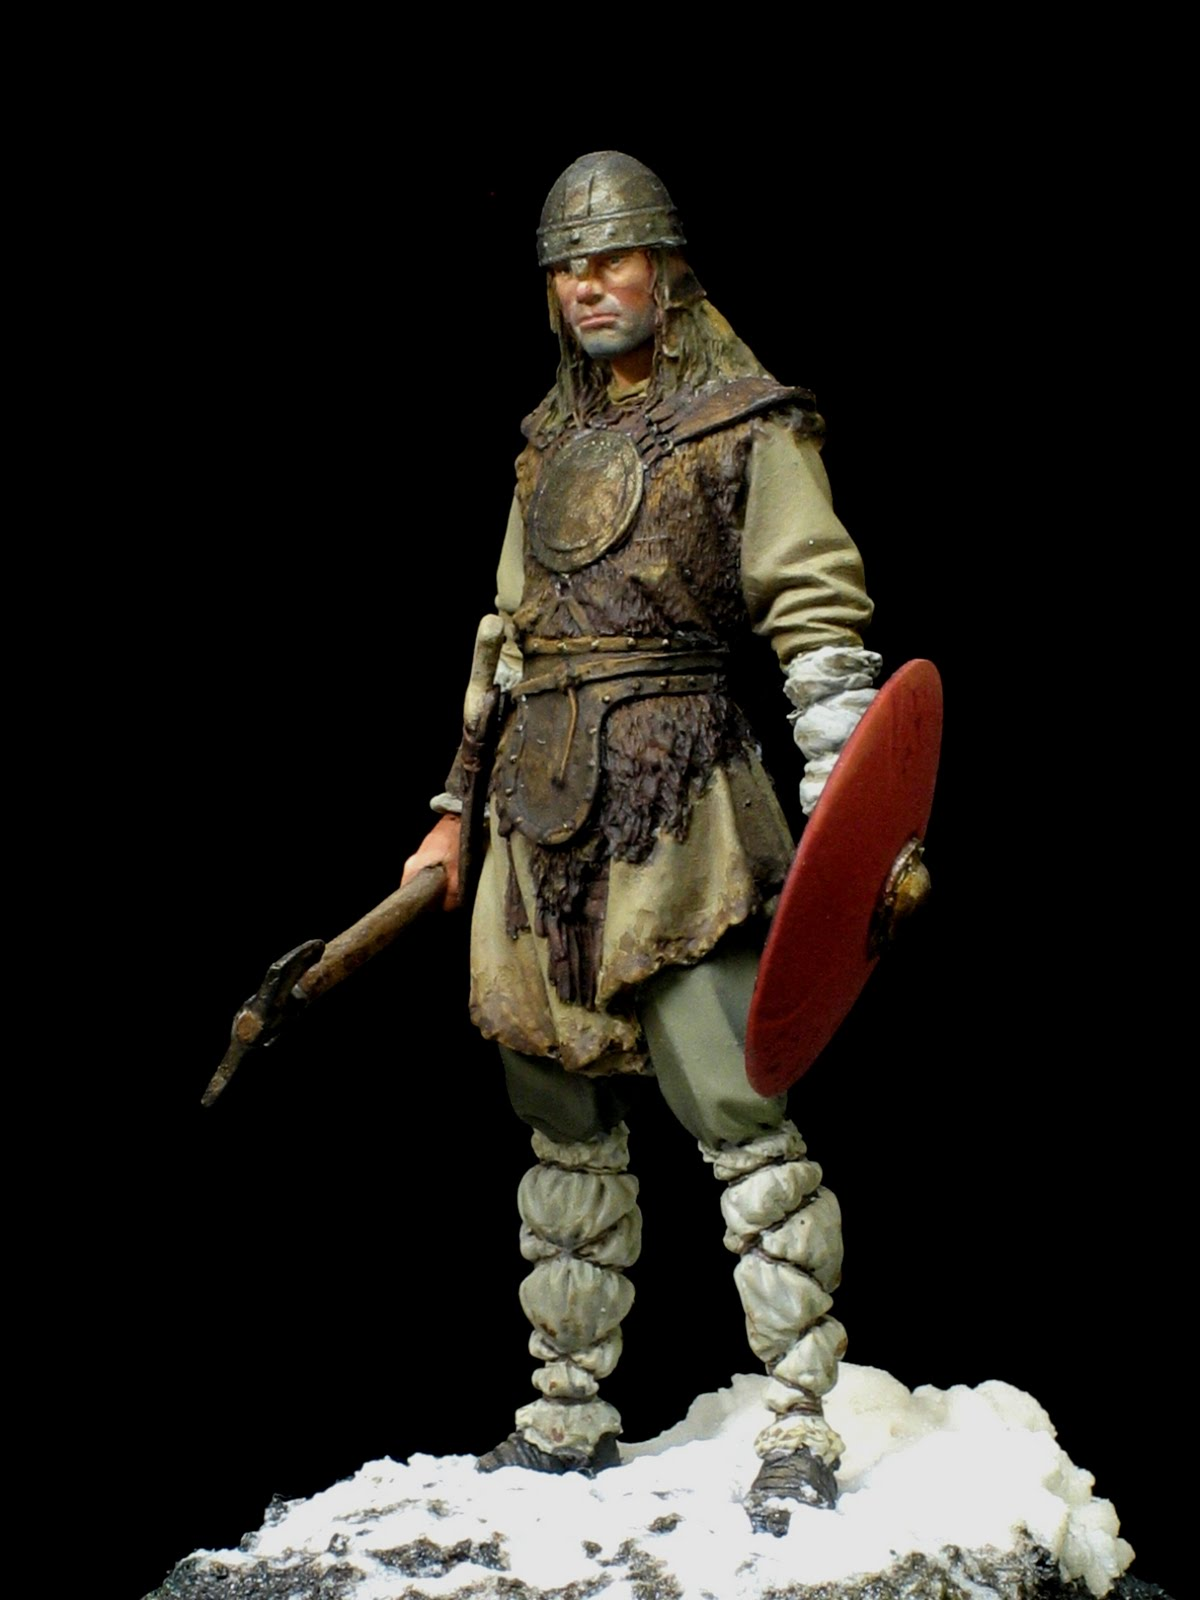 Saxon Warrior http://pohocaminiaturas.blogspot.com/2011/06/saxon-warrior.html